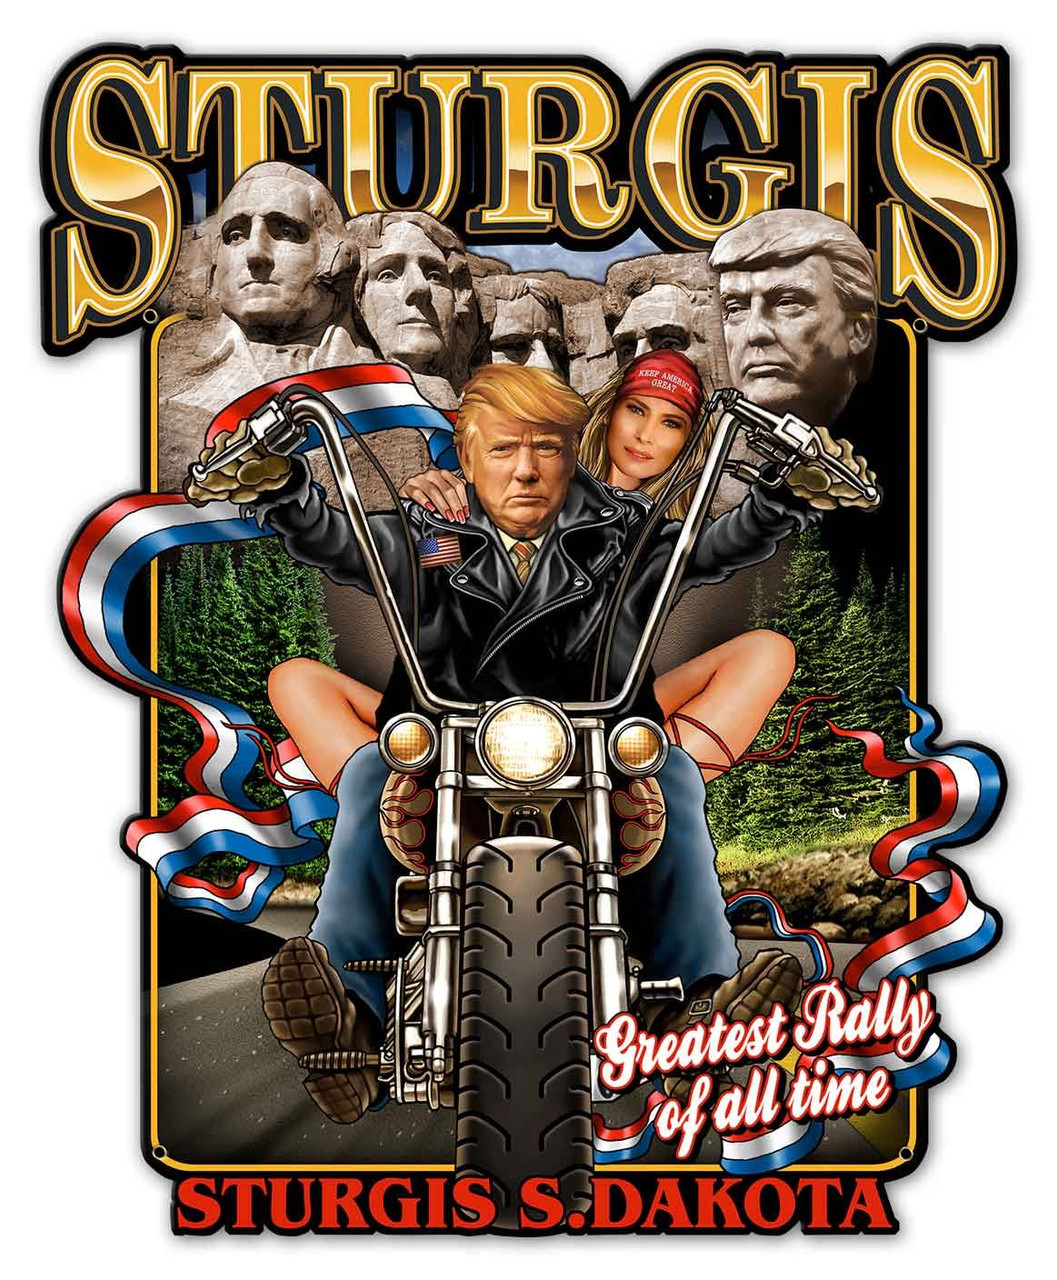 Sturgis Rally Metal Sign 18 x 22 Inches